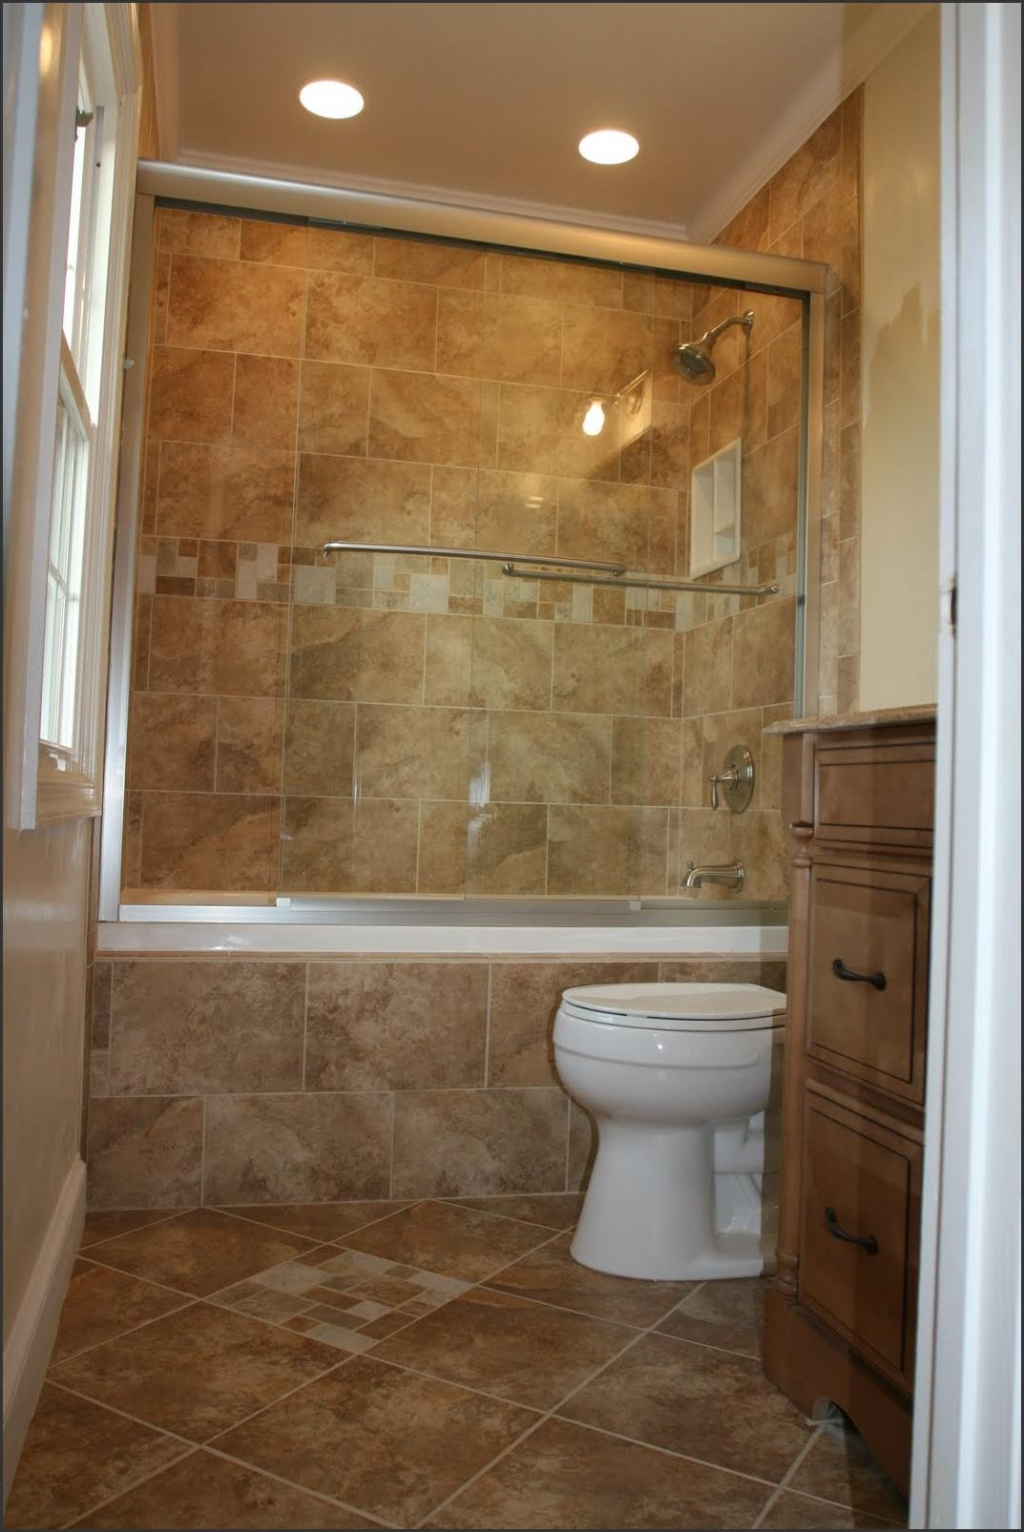 34 Great Pictures And Ideas Of Neutral Bathroom Tile